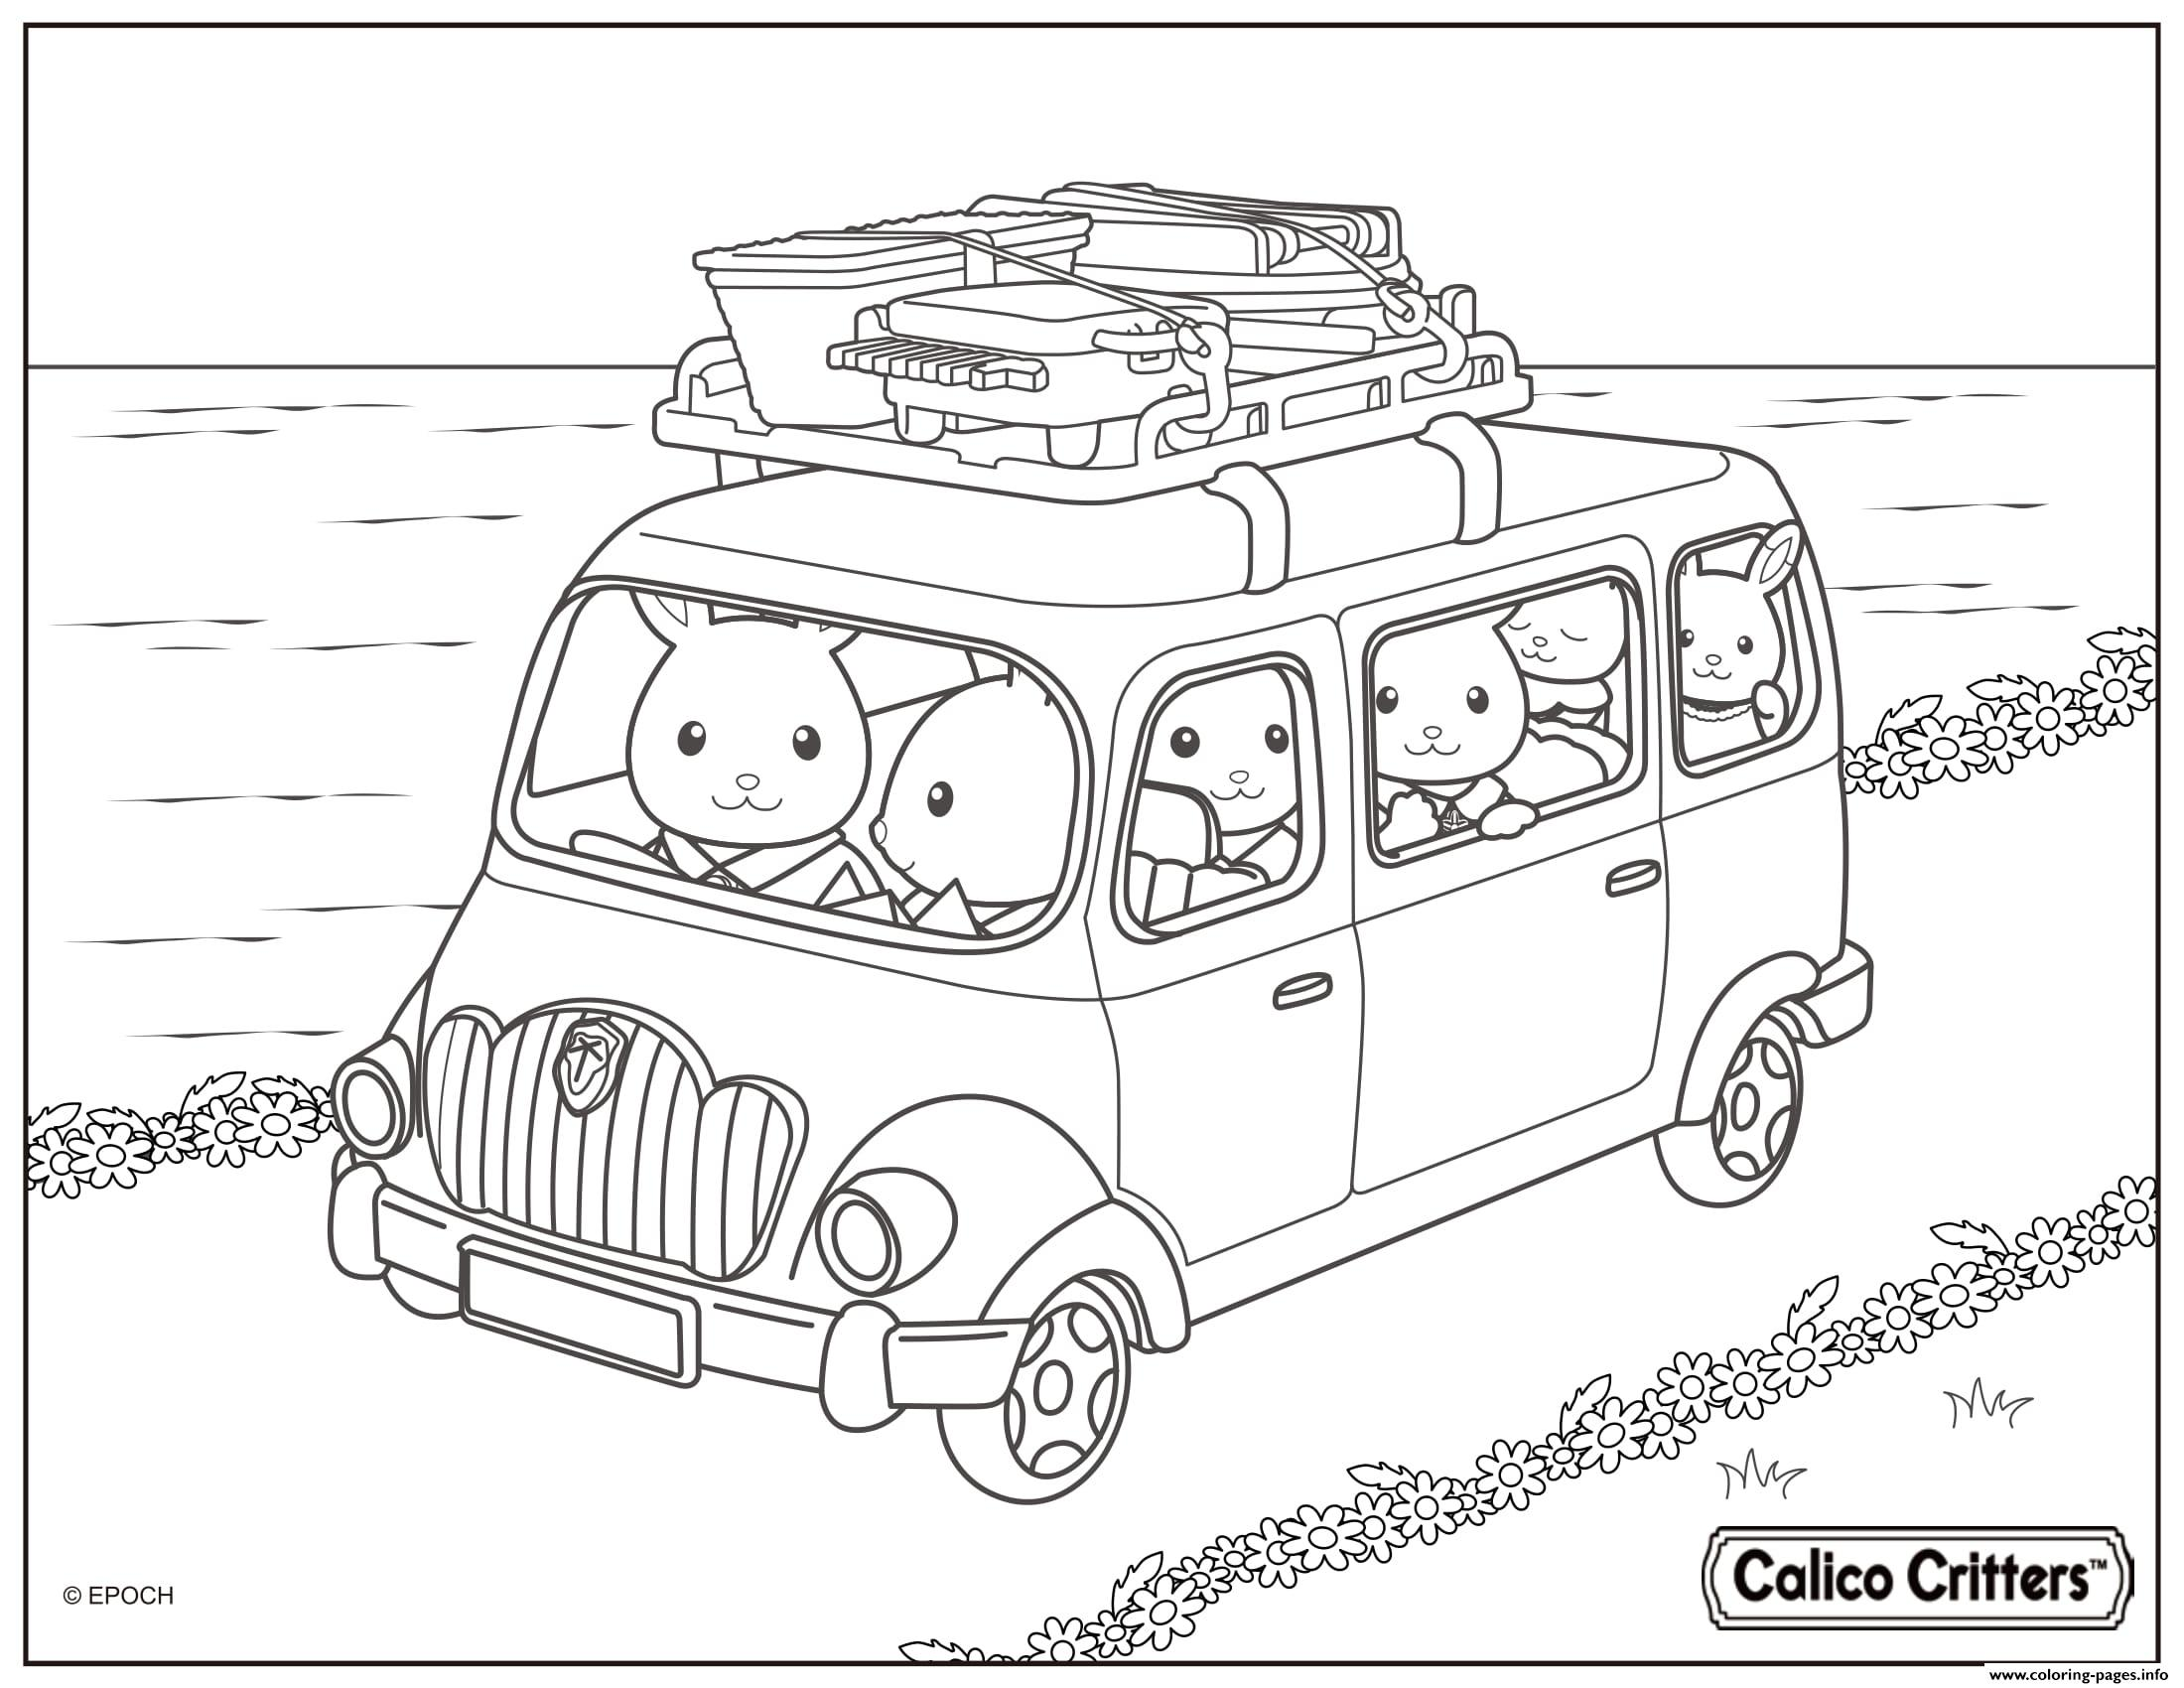 Calico Critters All The Family Travel Coloring Pages Printable